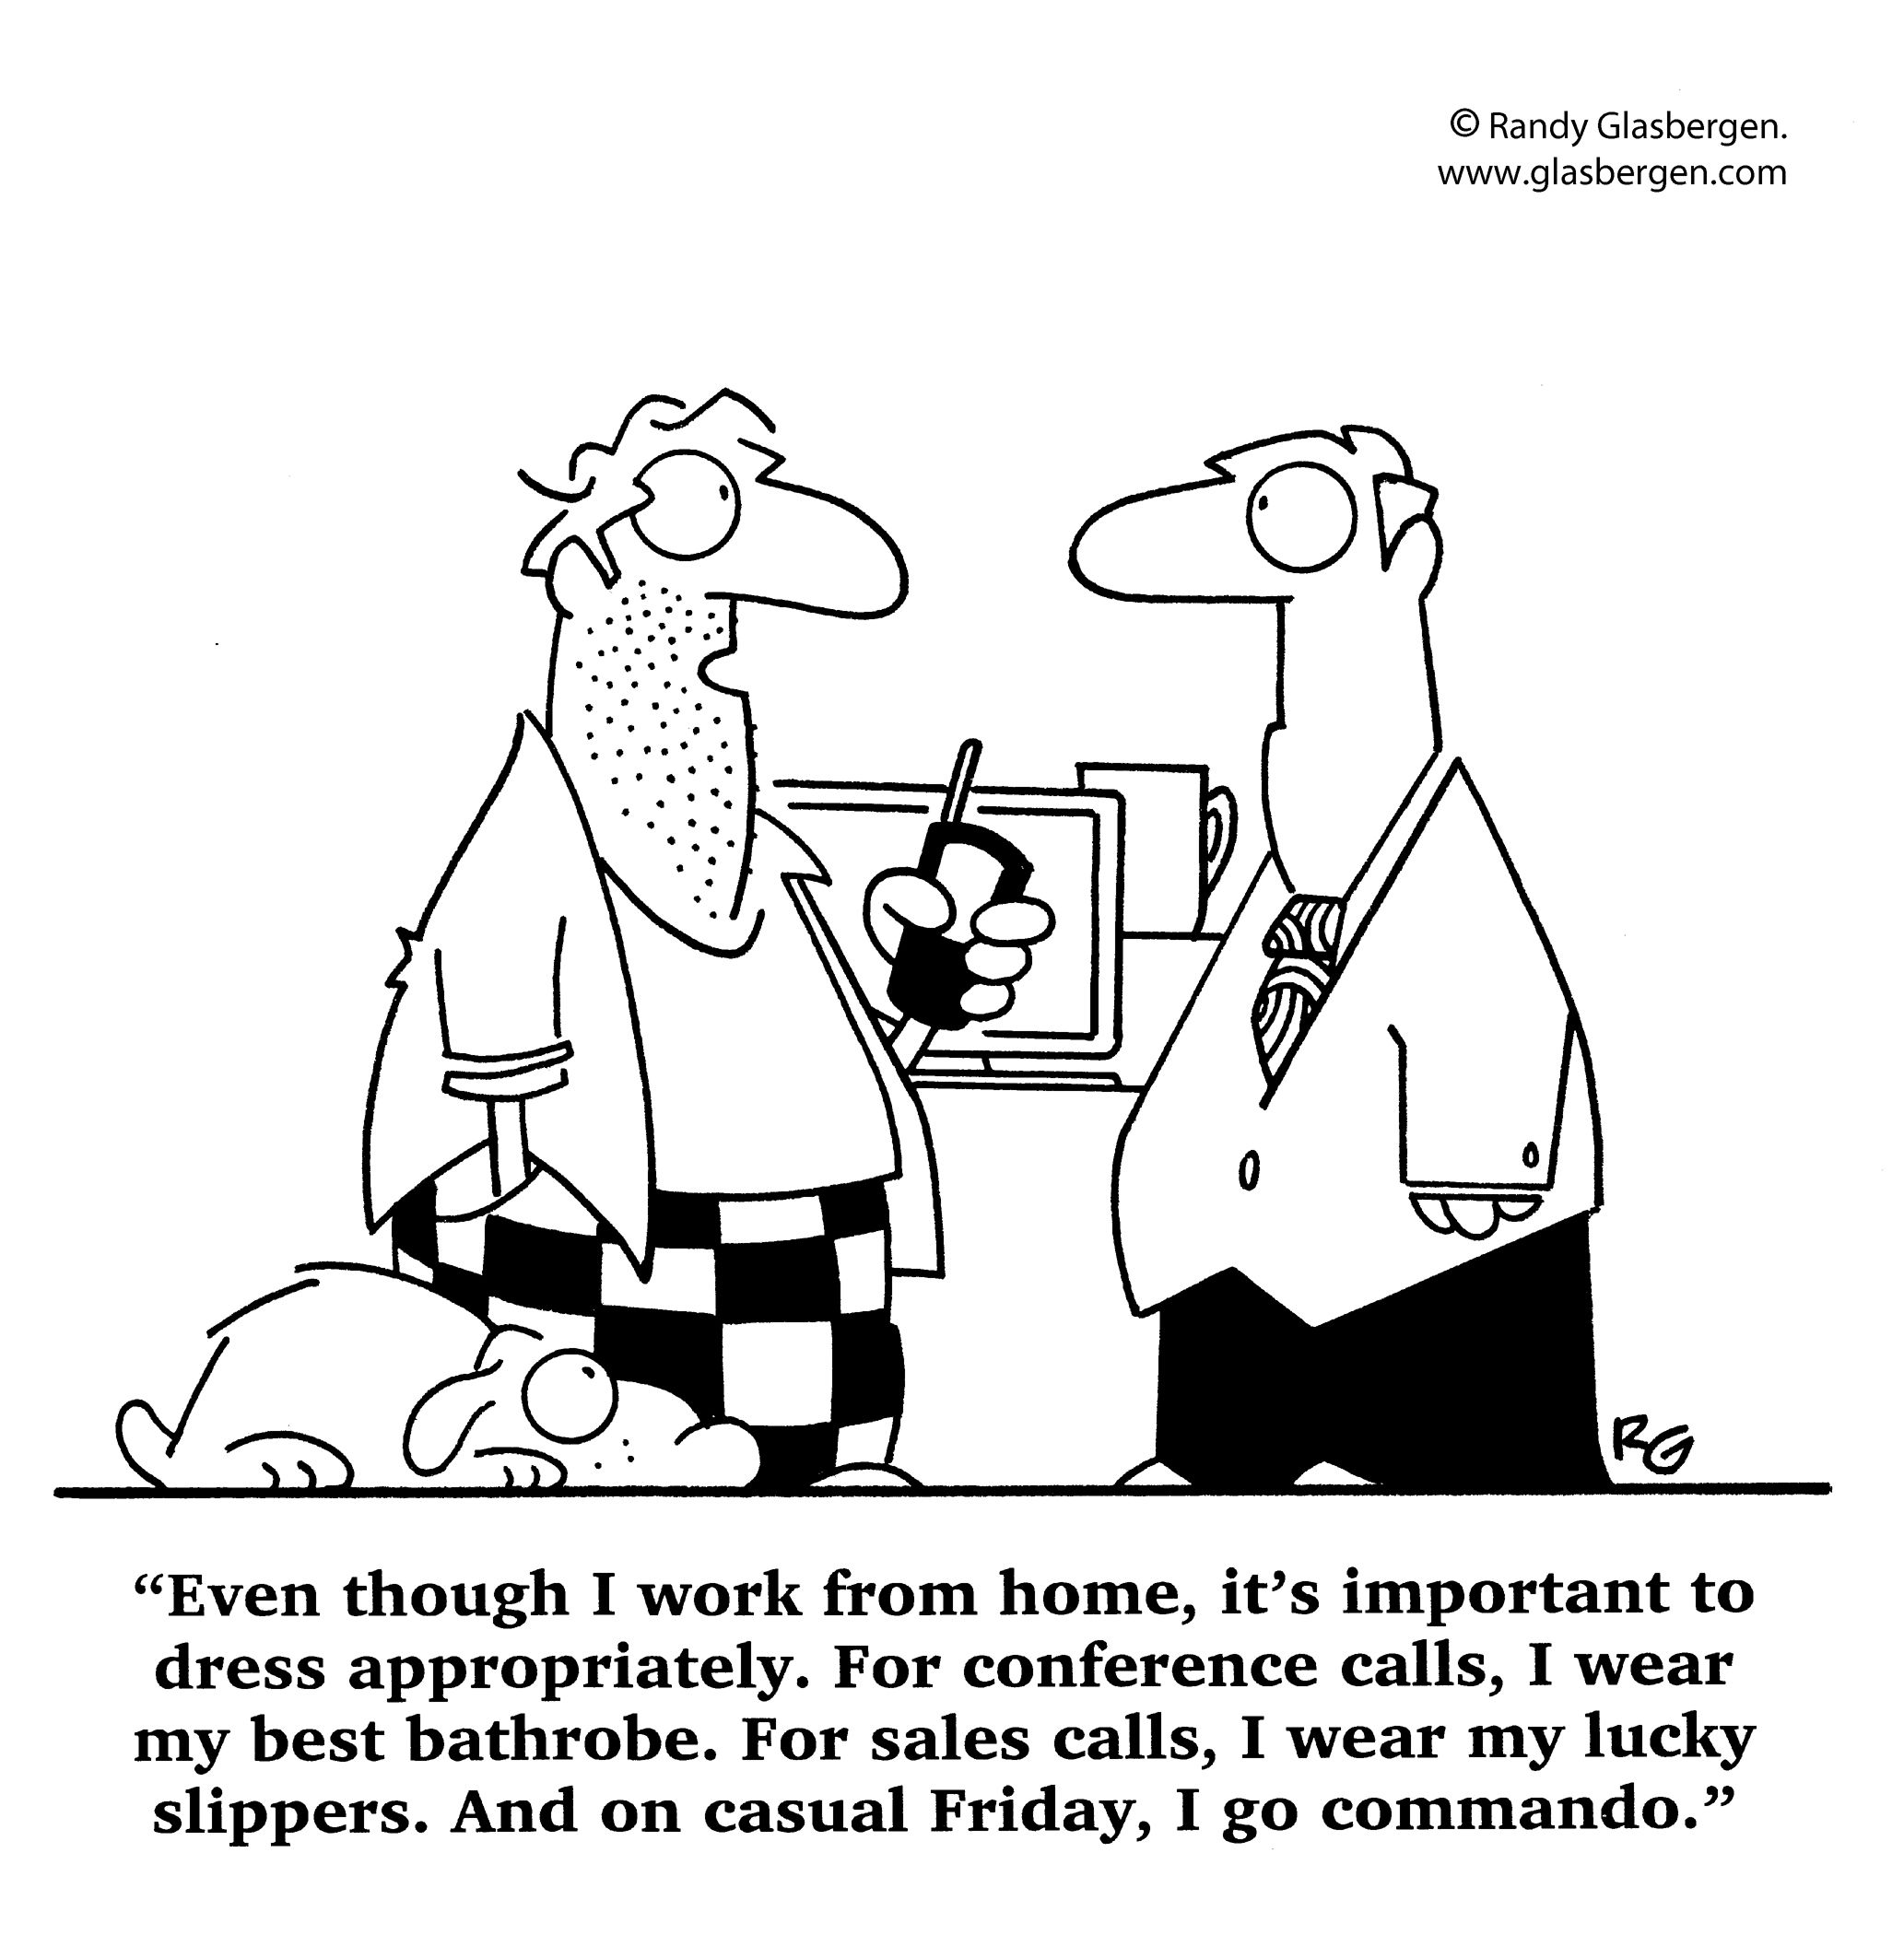 My Favorite How Do You Work At The Home Office Work Cartoons Surveys For Cash Funny Cartoons About Work